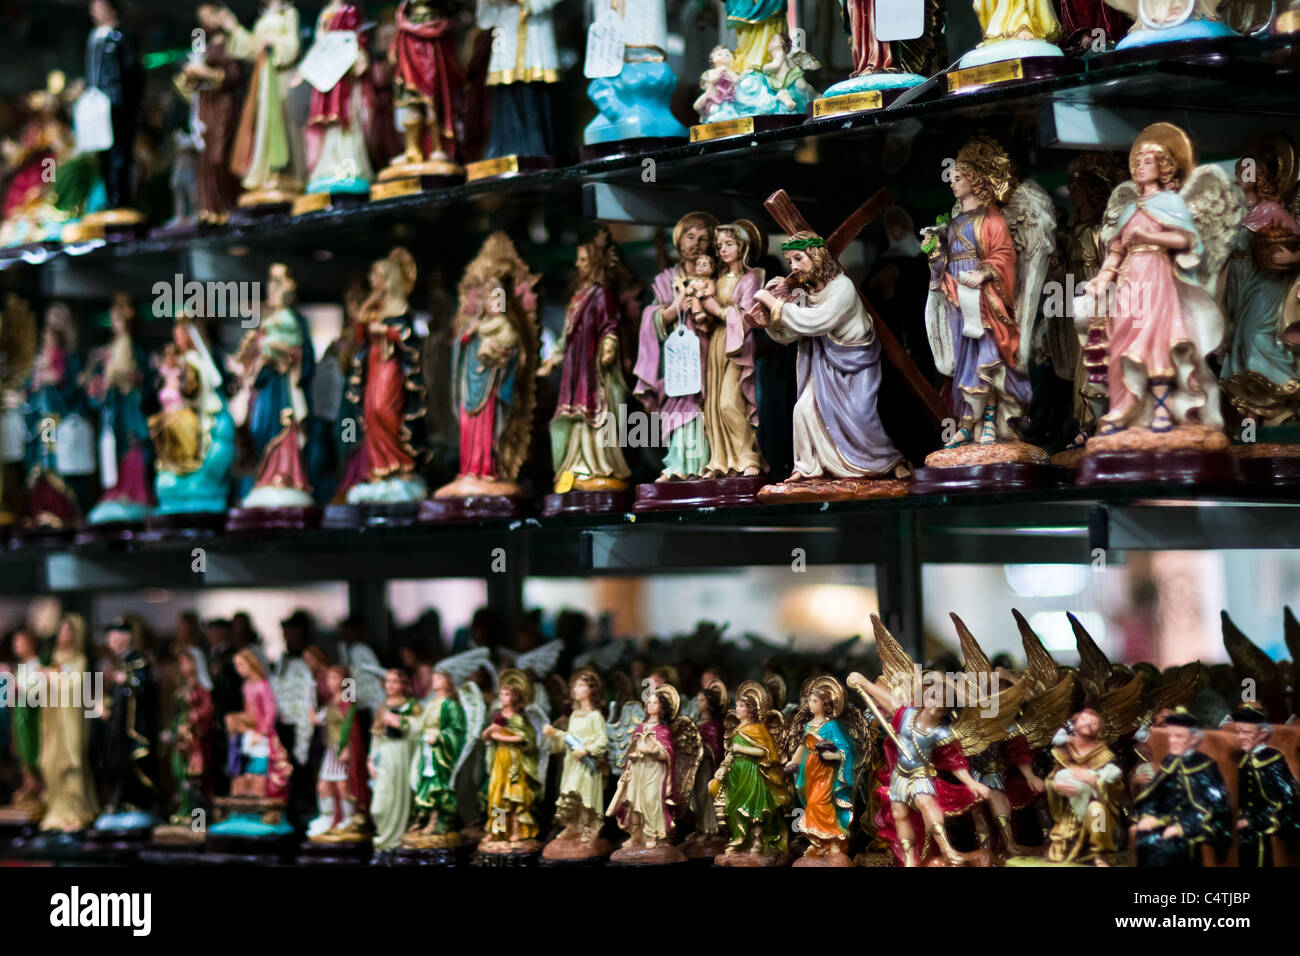 Catholic devotional objects for sale in a religious shop in Bogota, Colombia. - Stock Image